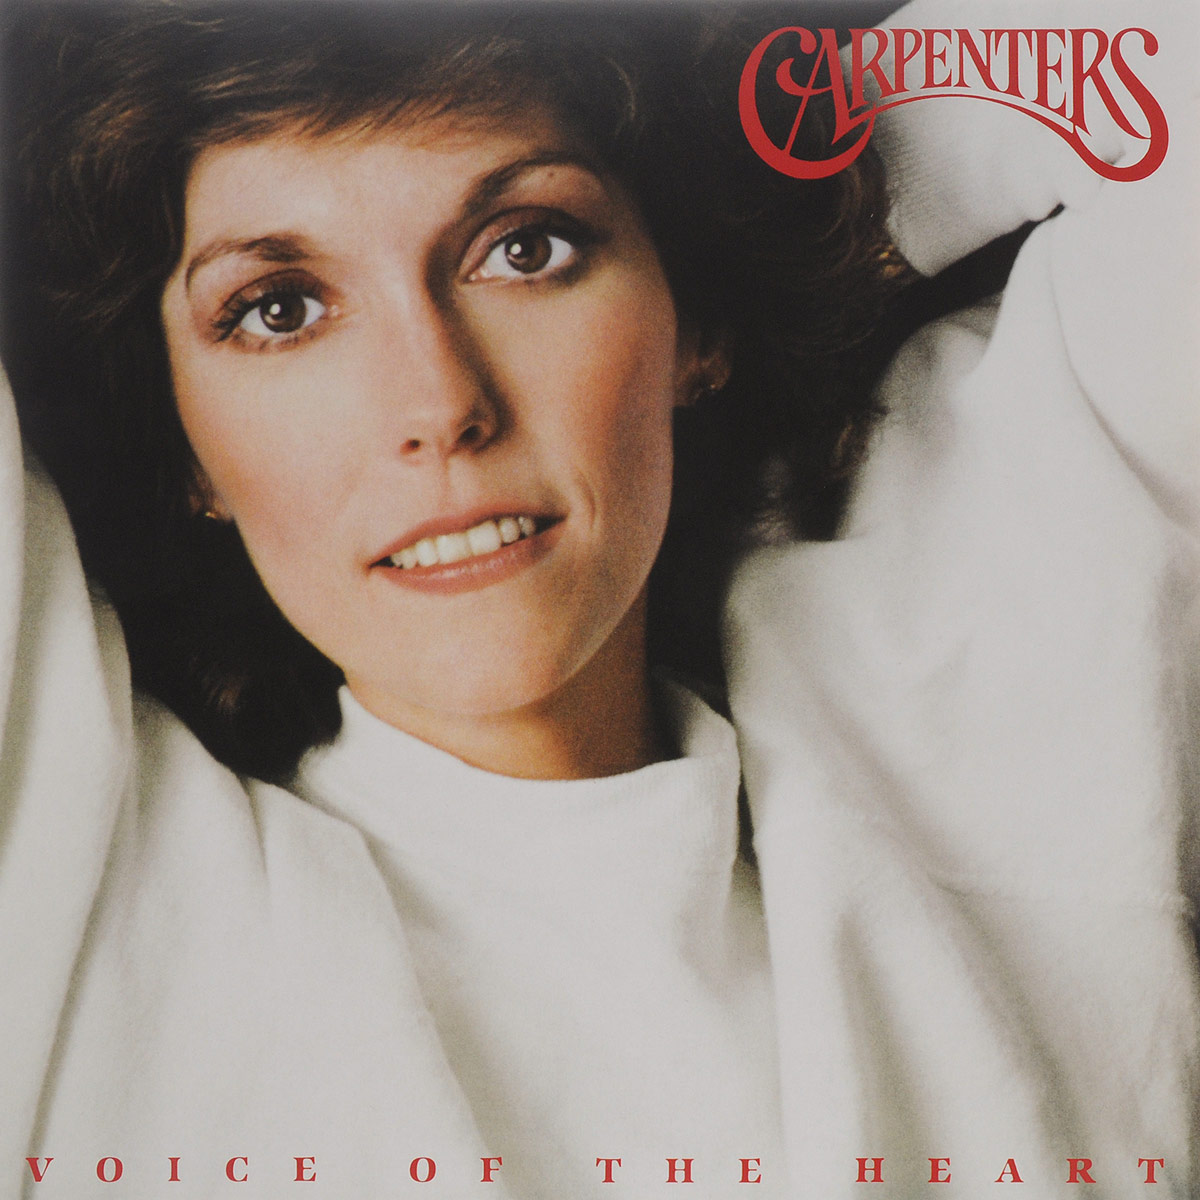 The Carpenters Carpenters. Voice Of The Heart (LP) electro voice electro voice tx1181